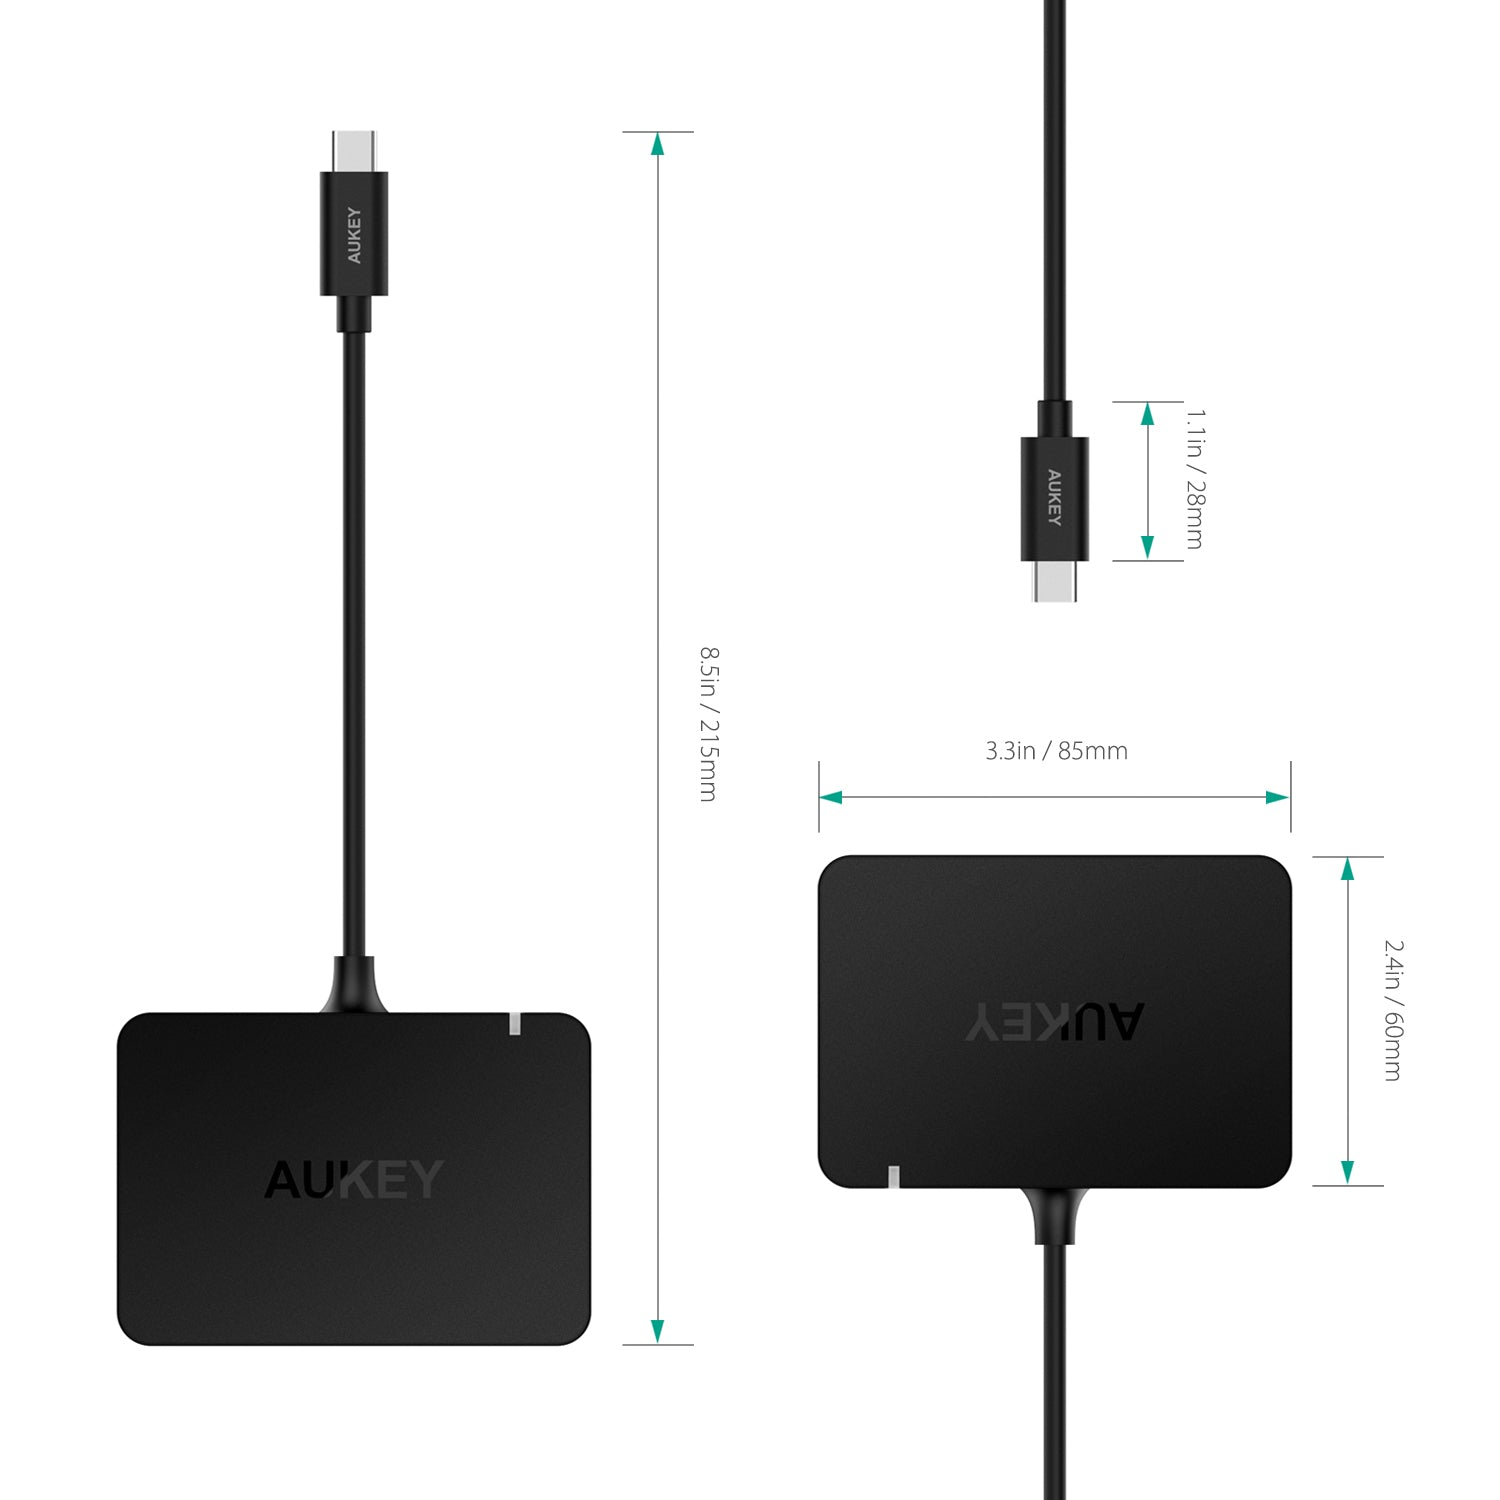 AUKEY CB-C58 USB-C to 4-Port USB 3.0 Hub with HDMI Port & Power Delivery